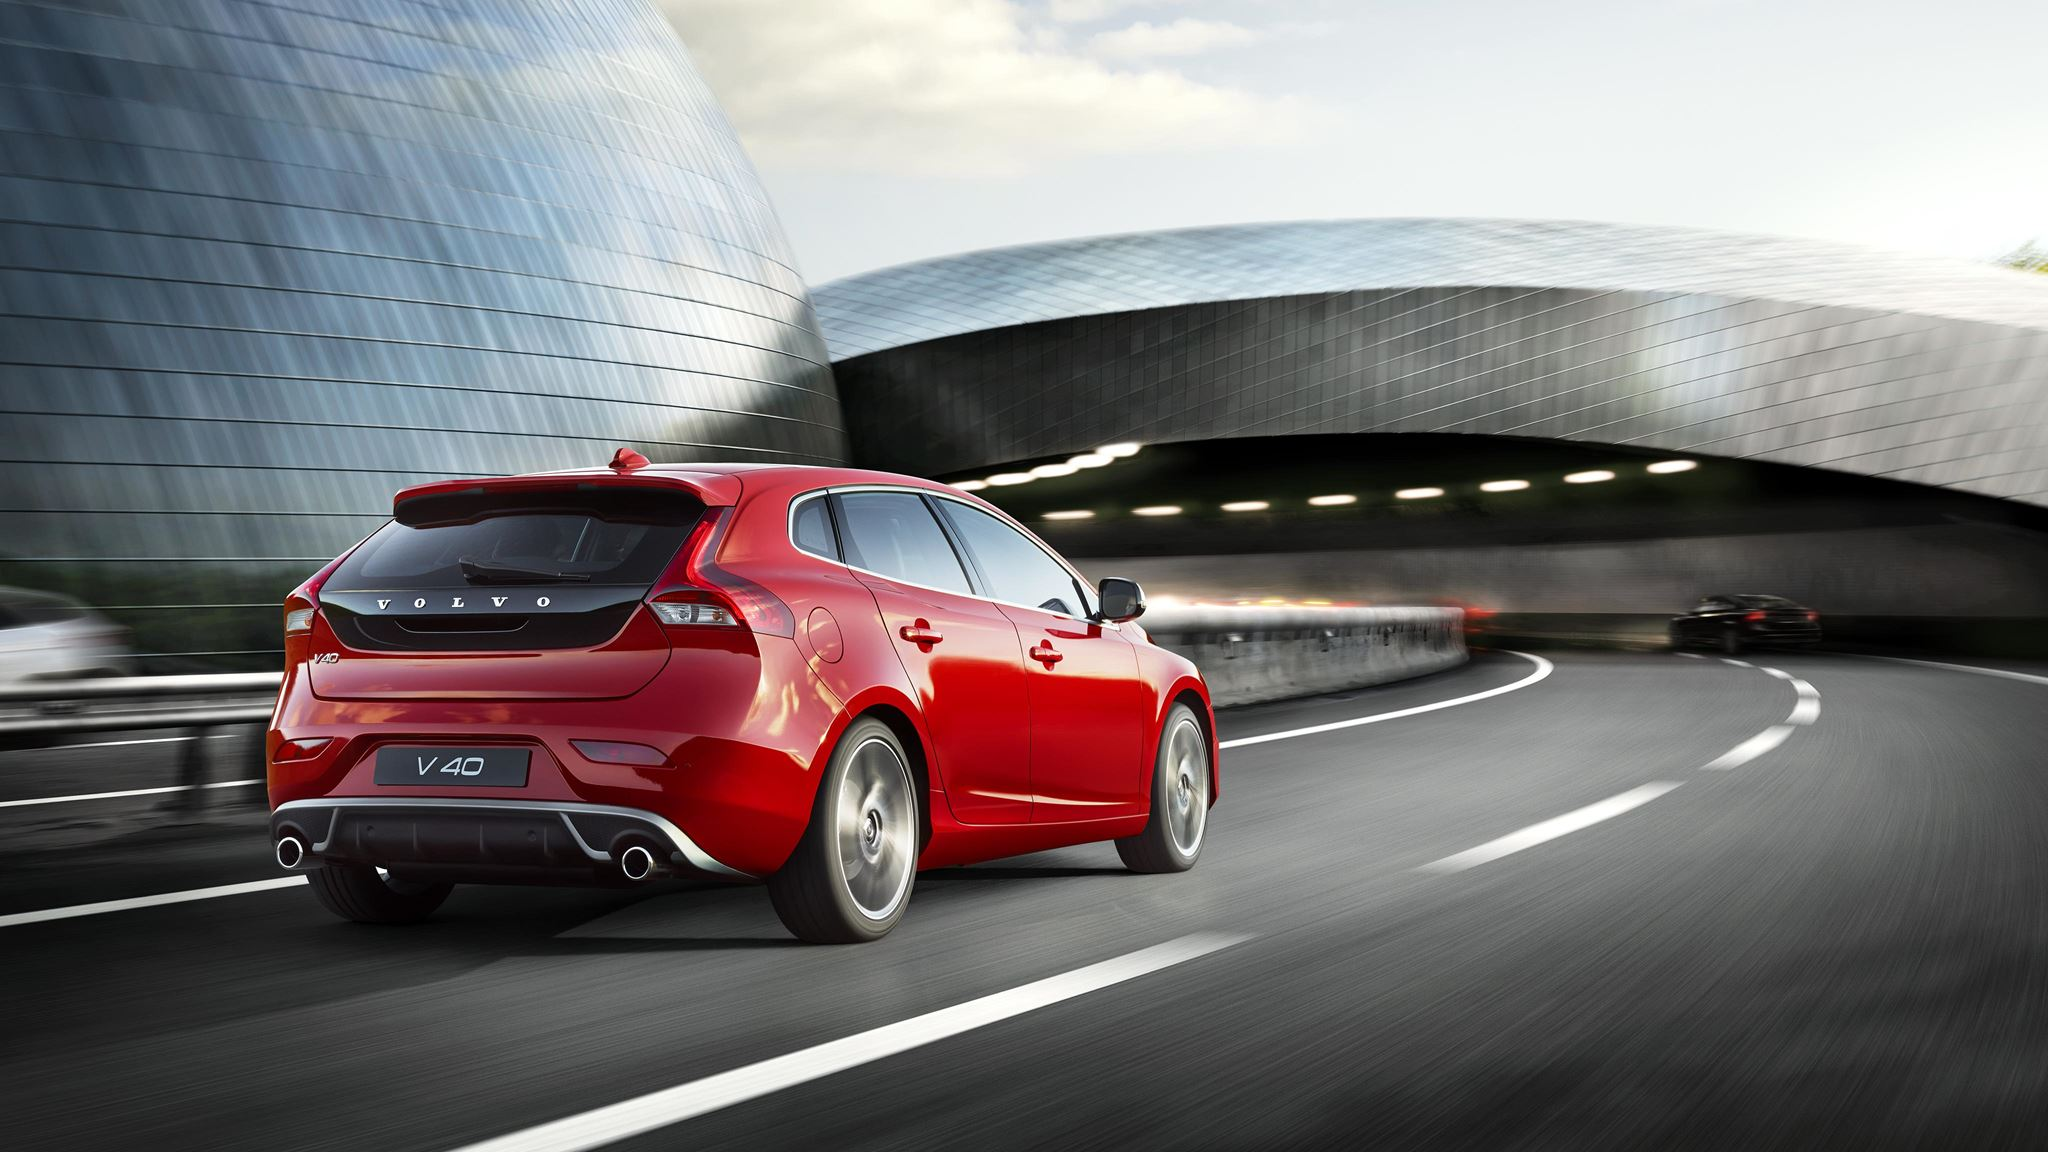 volvo v40 hatchback launch report prices specification. Black Bedroom Furniture Sets. Home Design Ideas